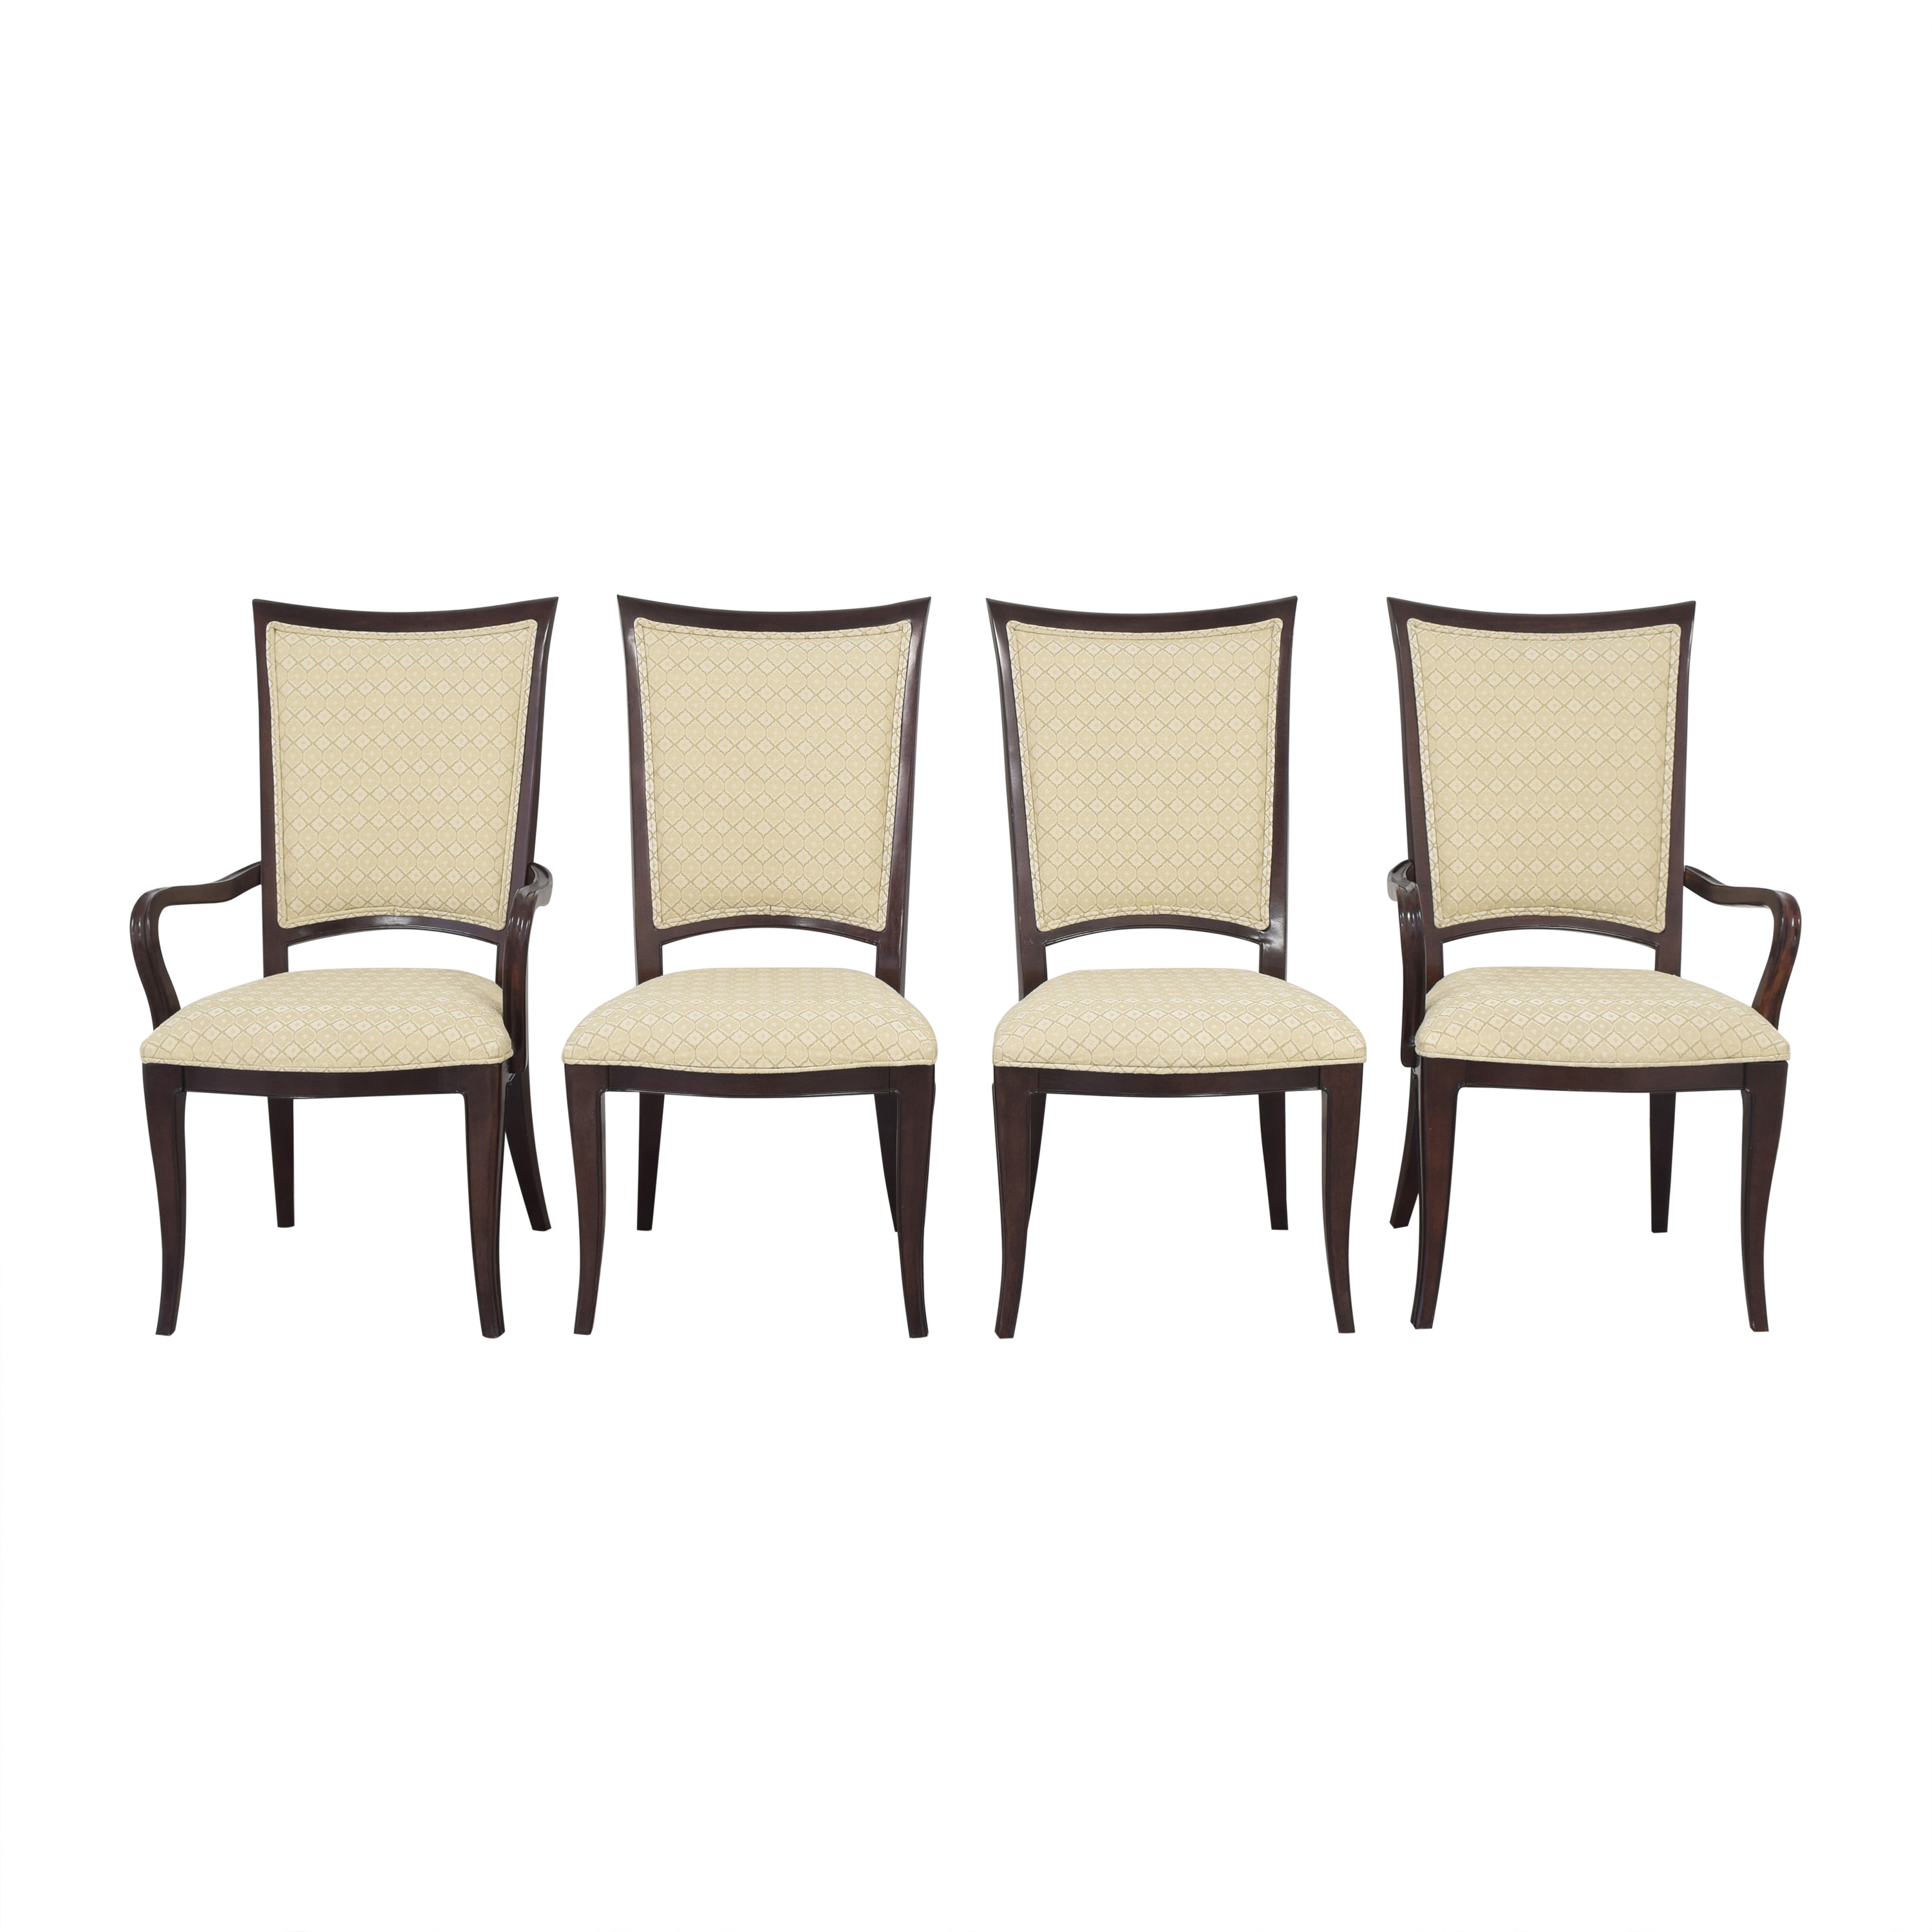 Thomasville Thomasville Dining Chairs discount